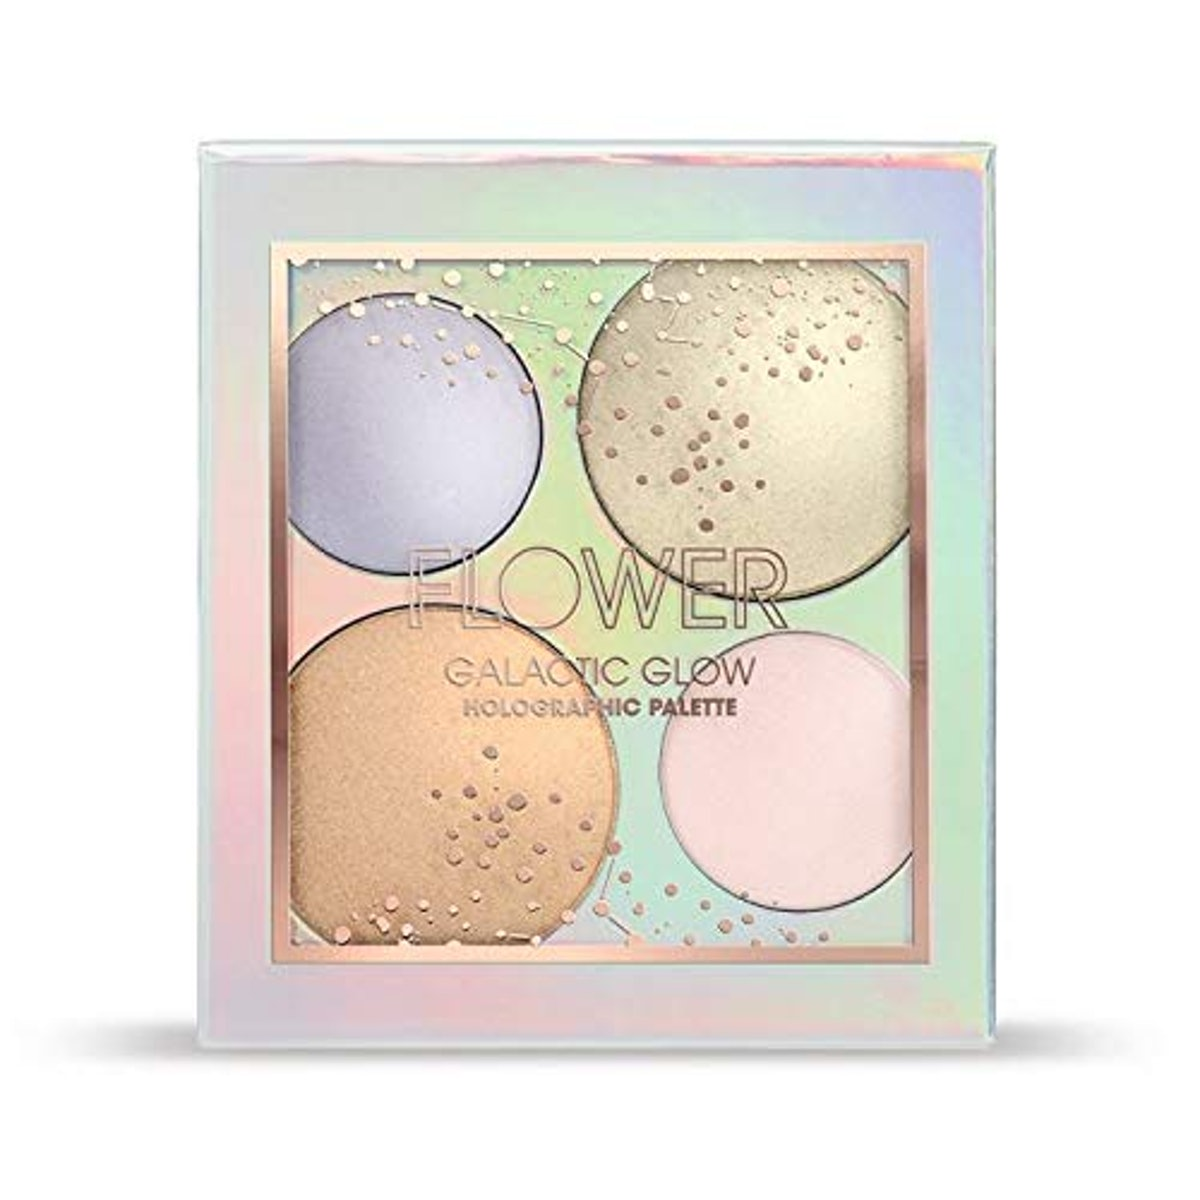 Flower Beauty Galactic Glow Holographic Palette